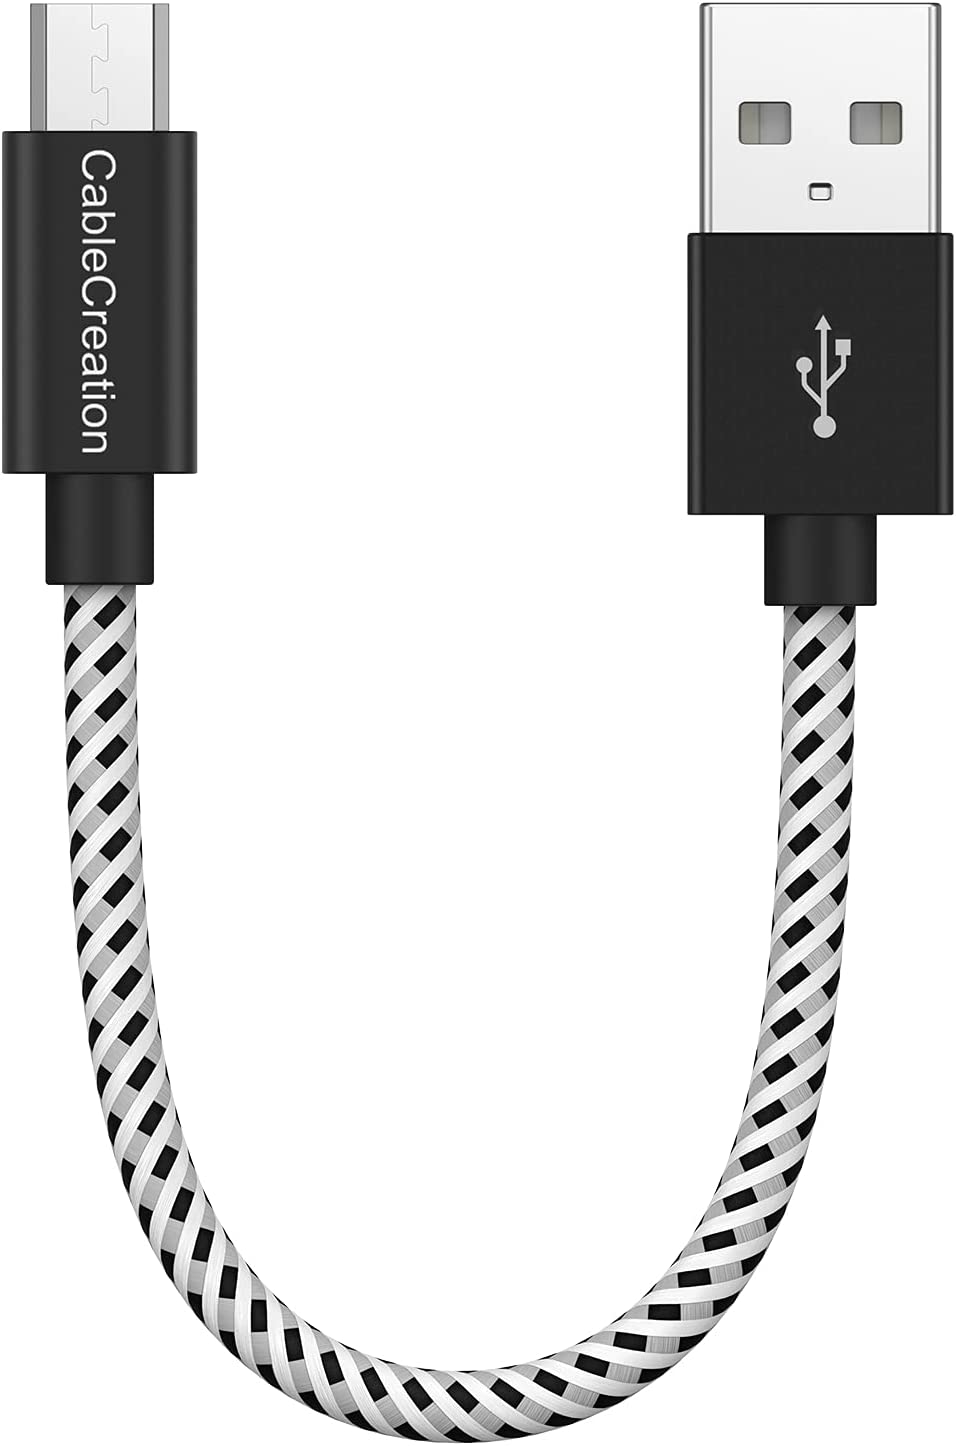 Micro USB Port Connector Zombie Halloween Universal 3 in 1 Multi-Purpose USB Cable Charging Cable Adapter for Mobile Phones and Tablets